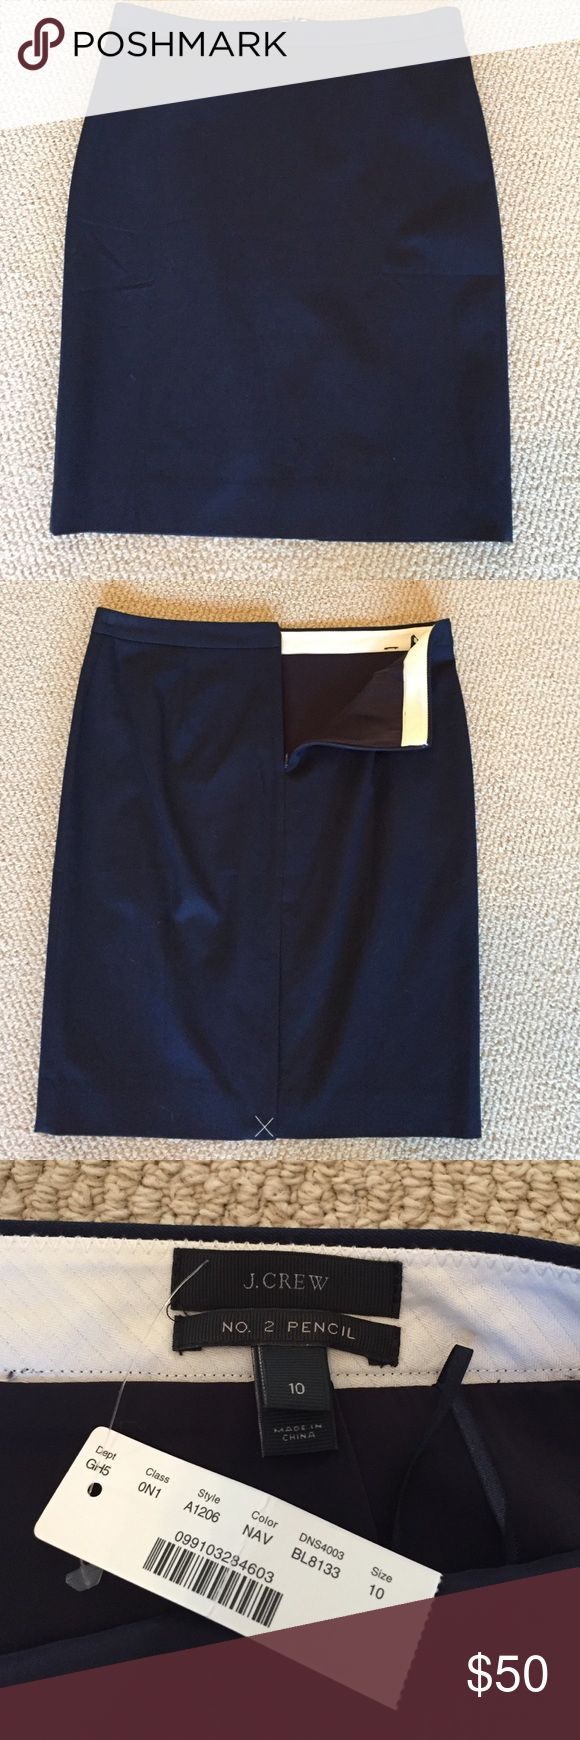 NWT J.Crew Navy Blue No. 2 Pencil Skirt Brand new - back kick vent still sewn shut. Navy blue. No. 2 pencil skirt from J.Crew. Back zip with hook and eye closure. 58% cotton, 38% viscose and 4% spandex J. Crew Skirts Pencil